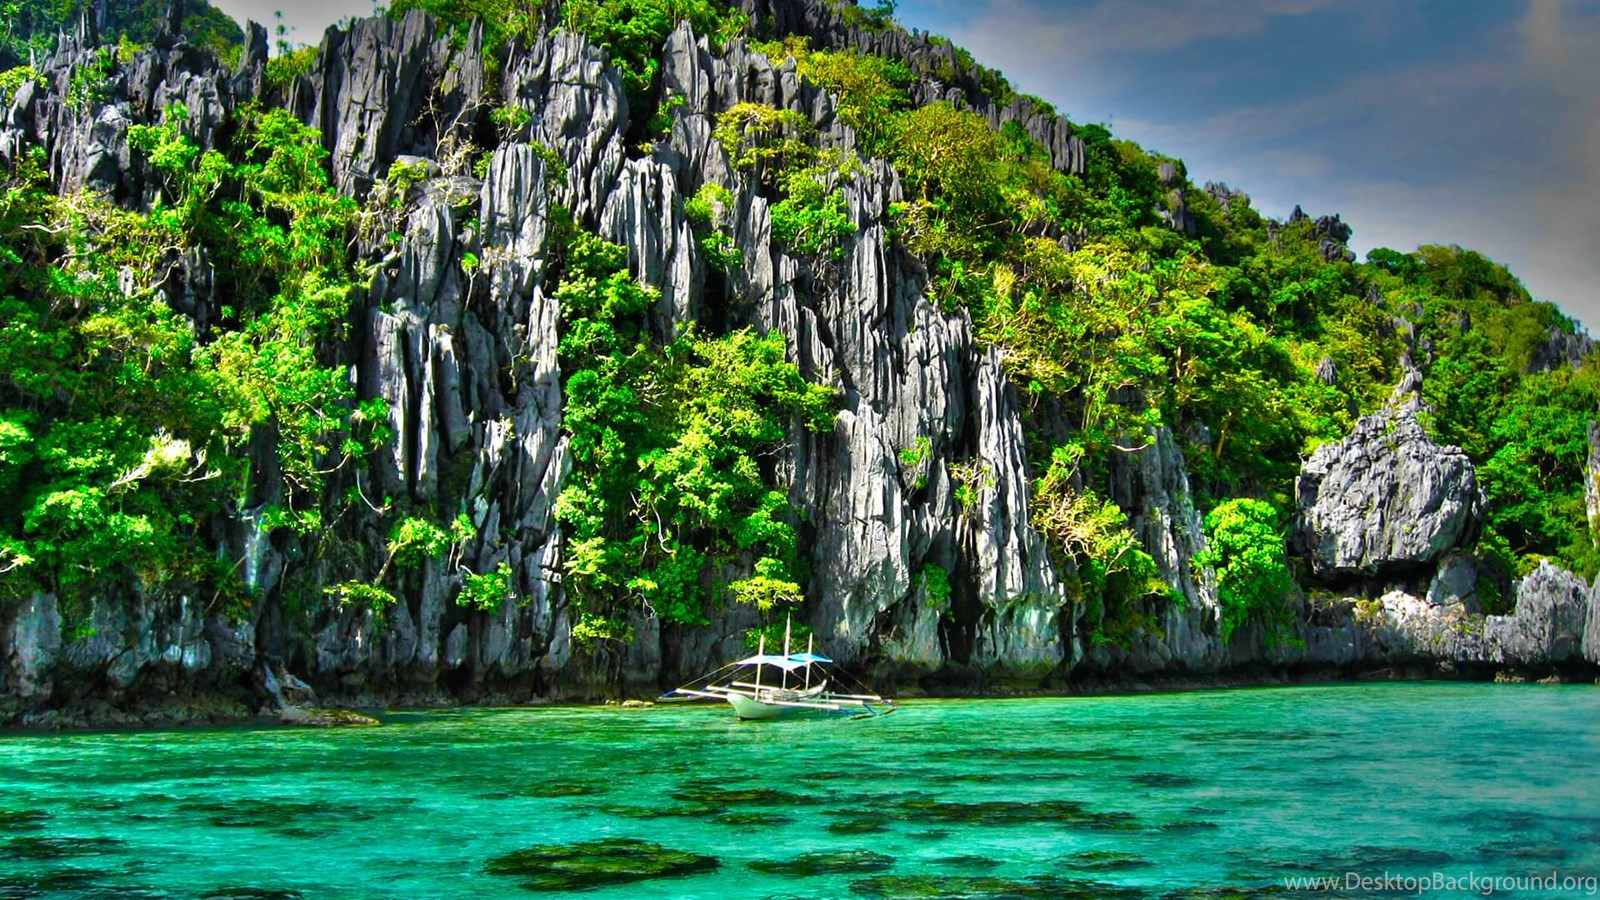 3d Touch Wallpaper Iphone 6s El Nido Palawan Philippines Wallpapers Desktop Background